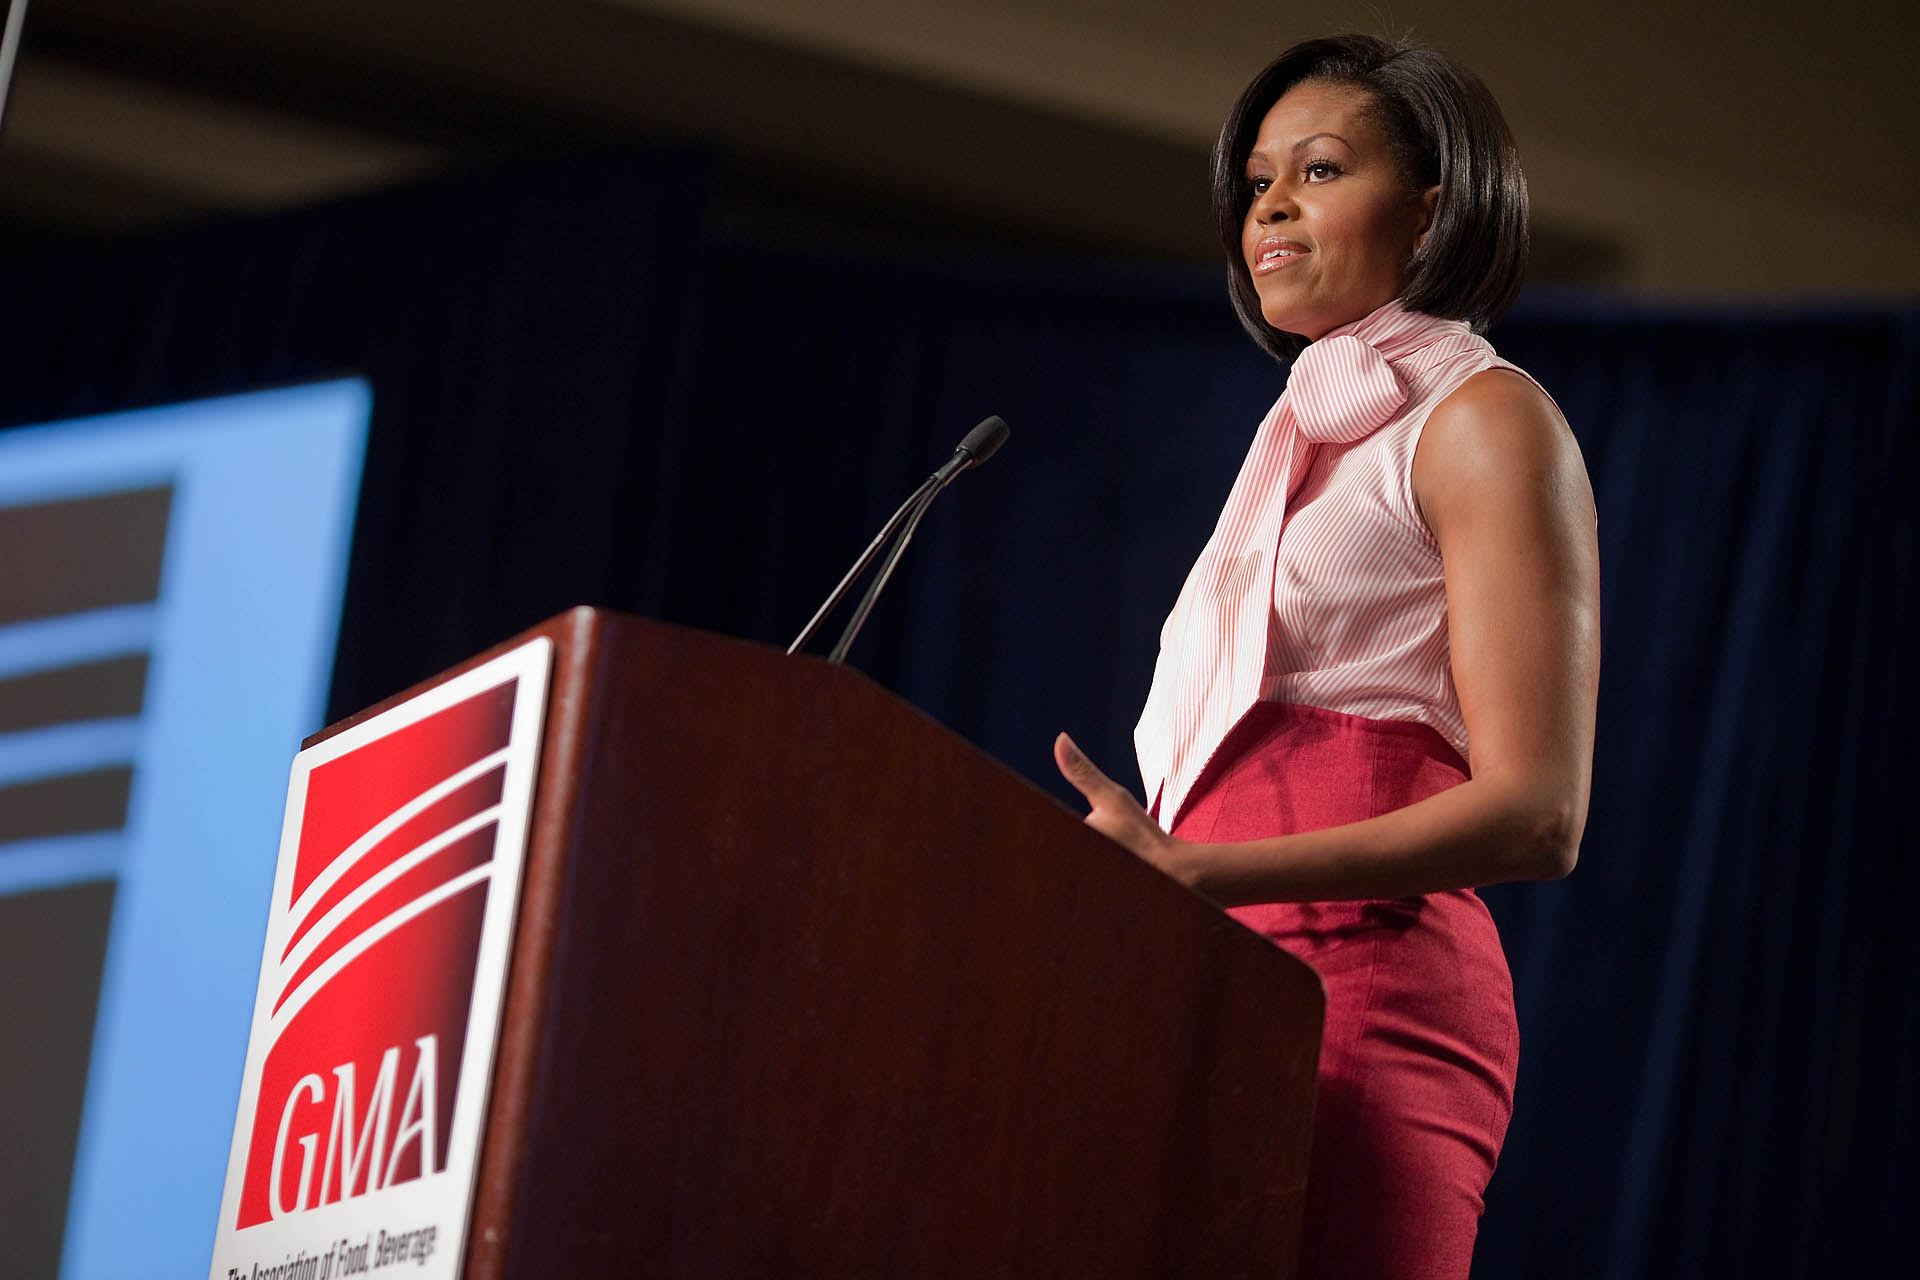 The First Lady speaks to the Grocery Manufacturers Association Conference